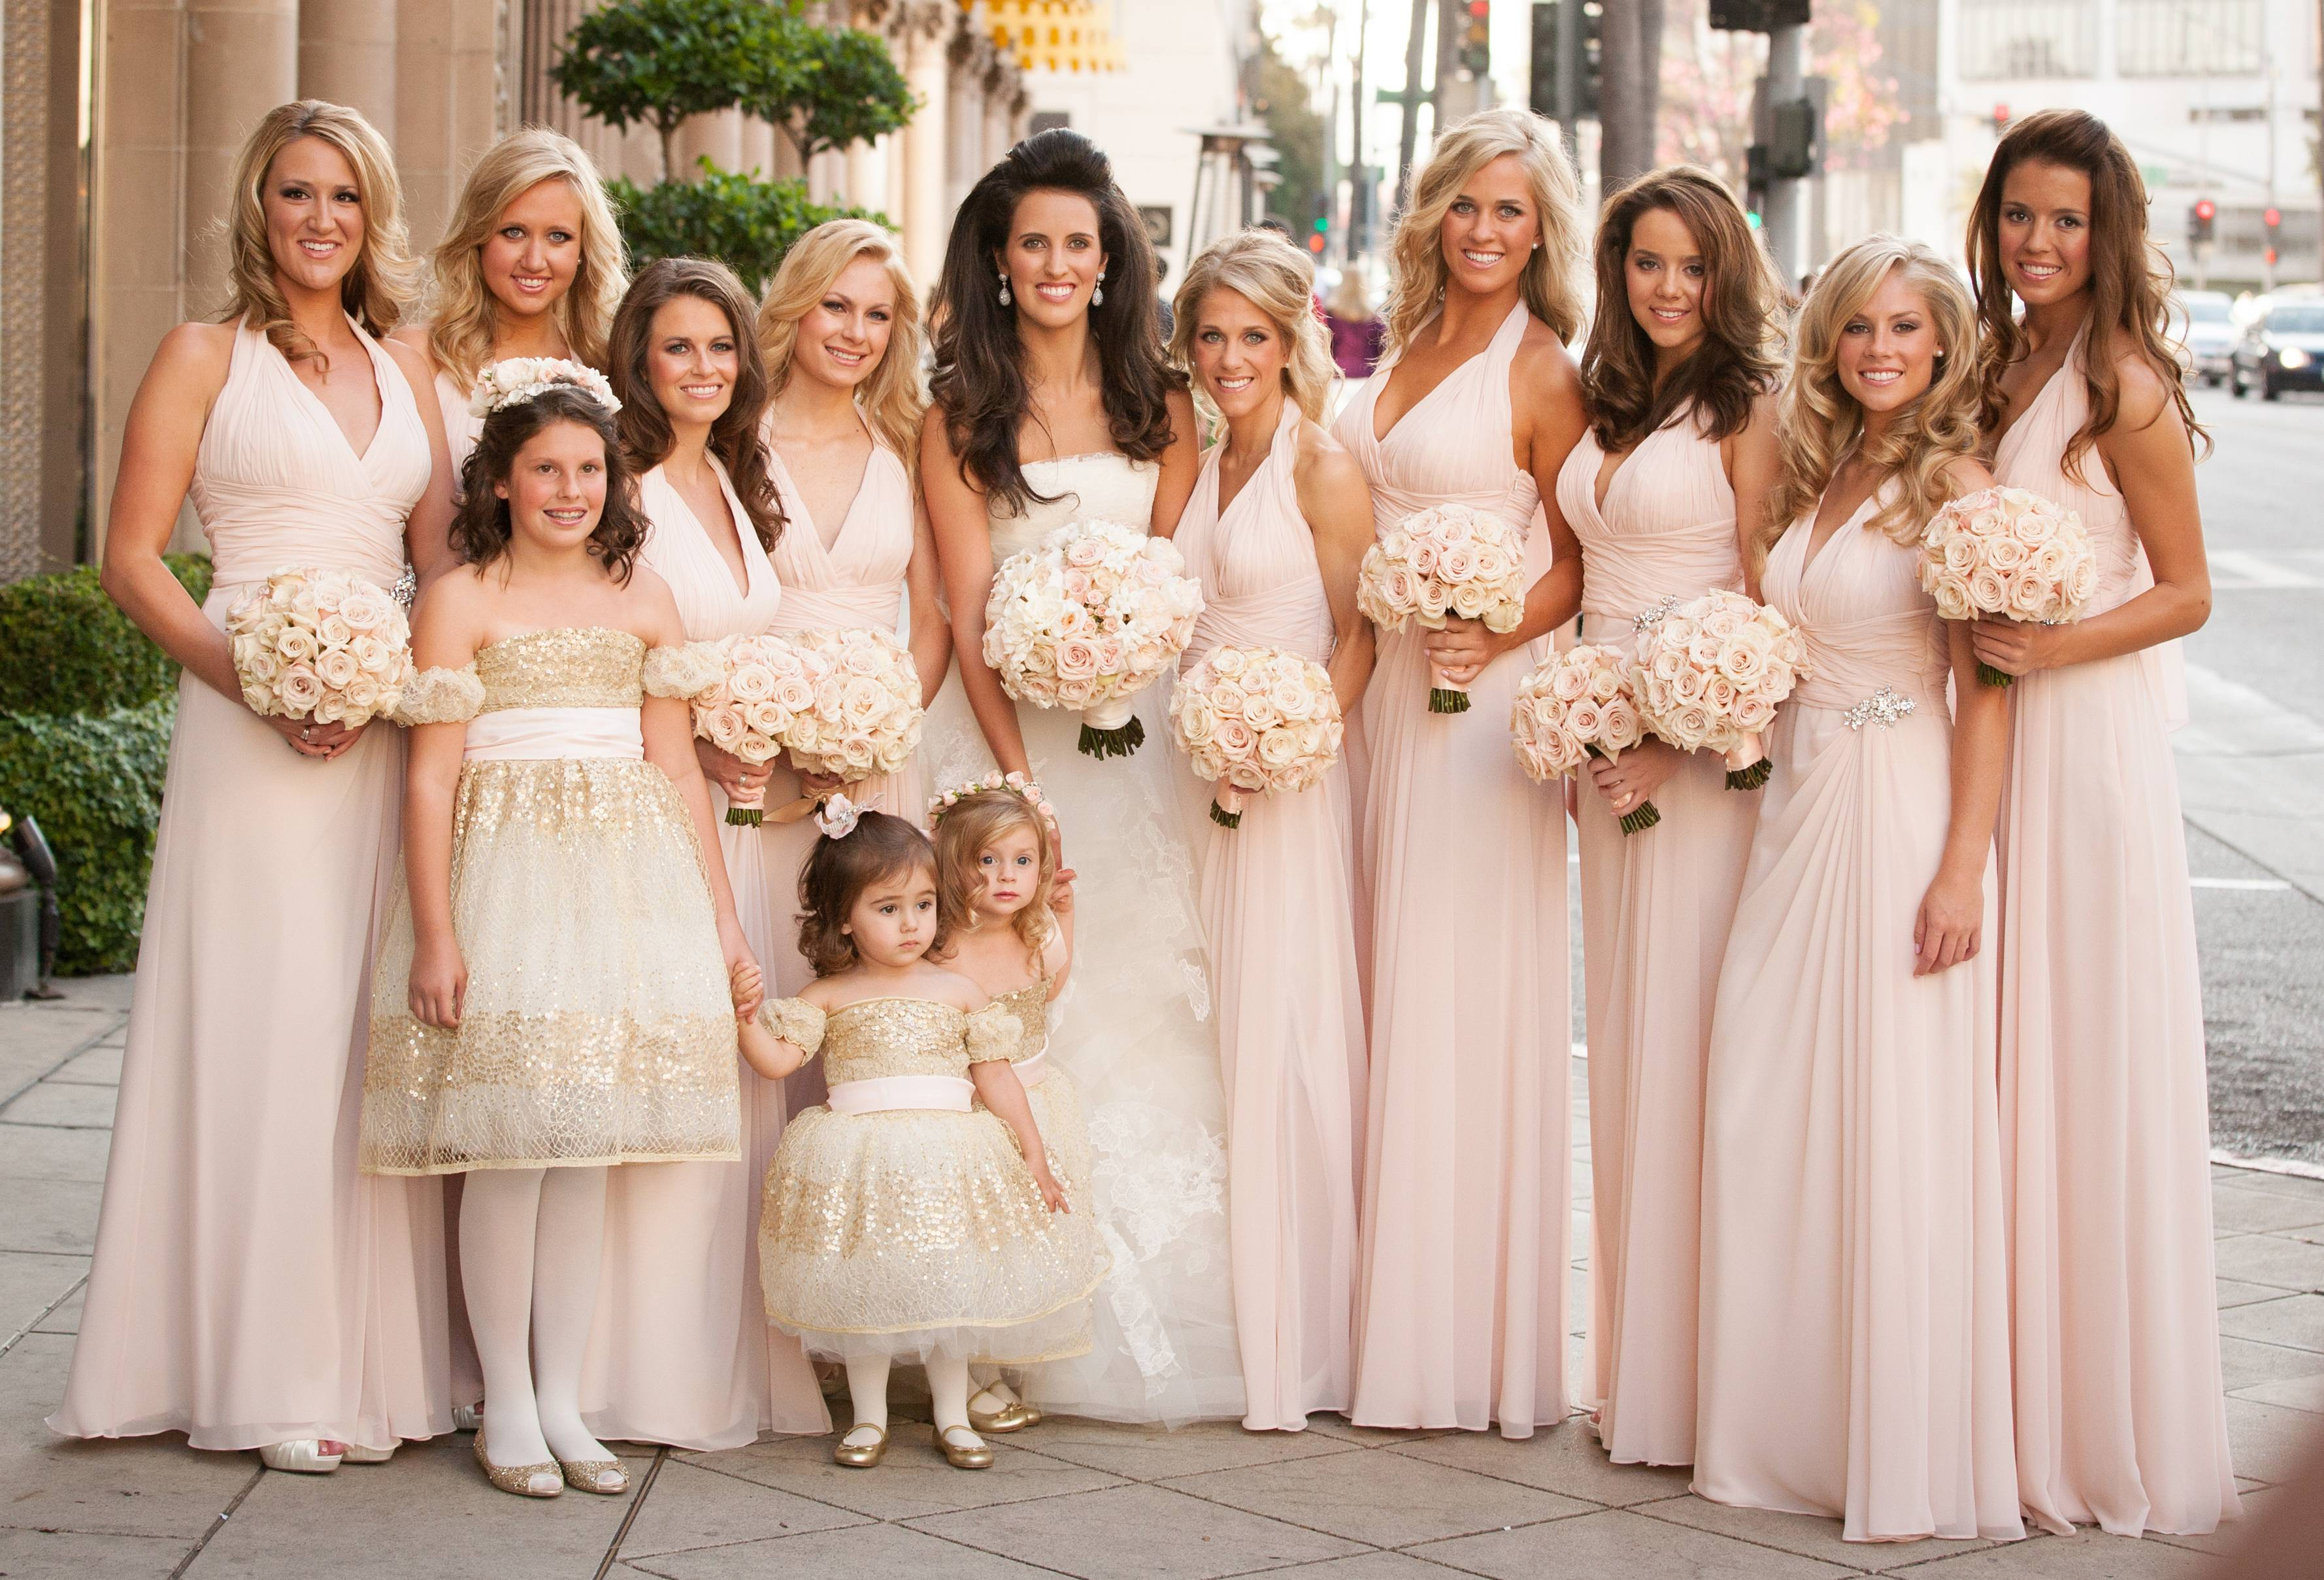 Bridesmaid Dresses: Blush Bridesmaid Gowns from Real